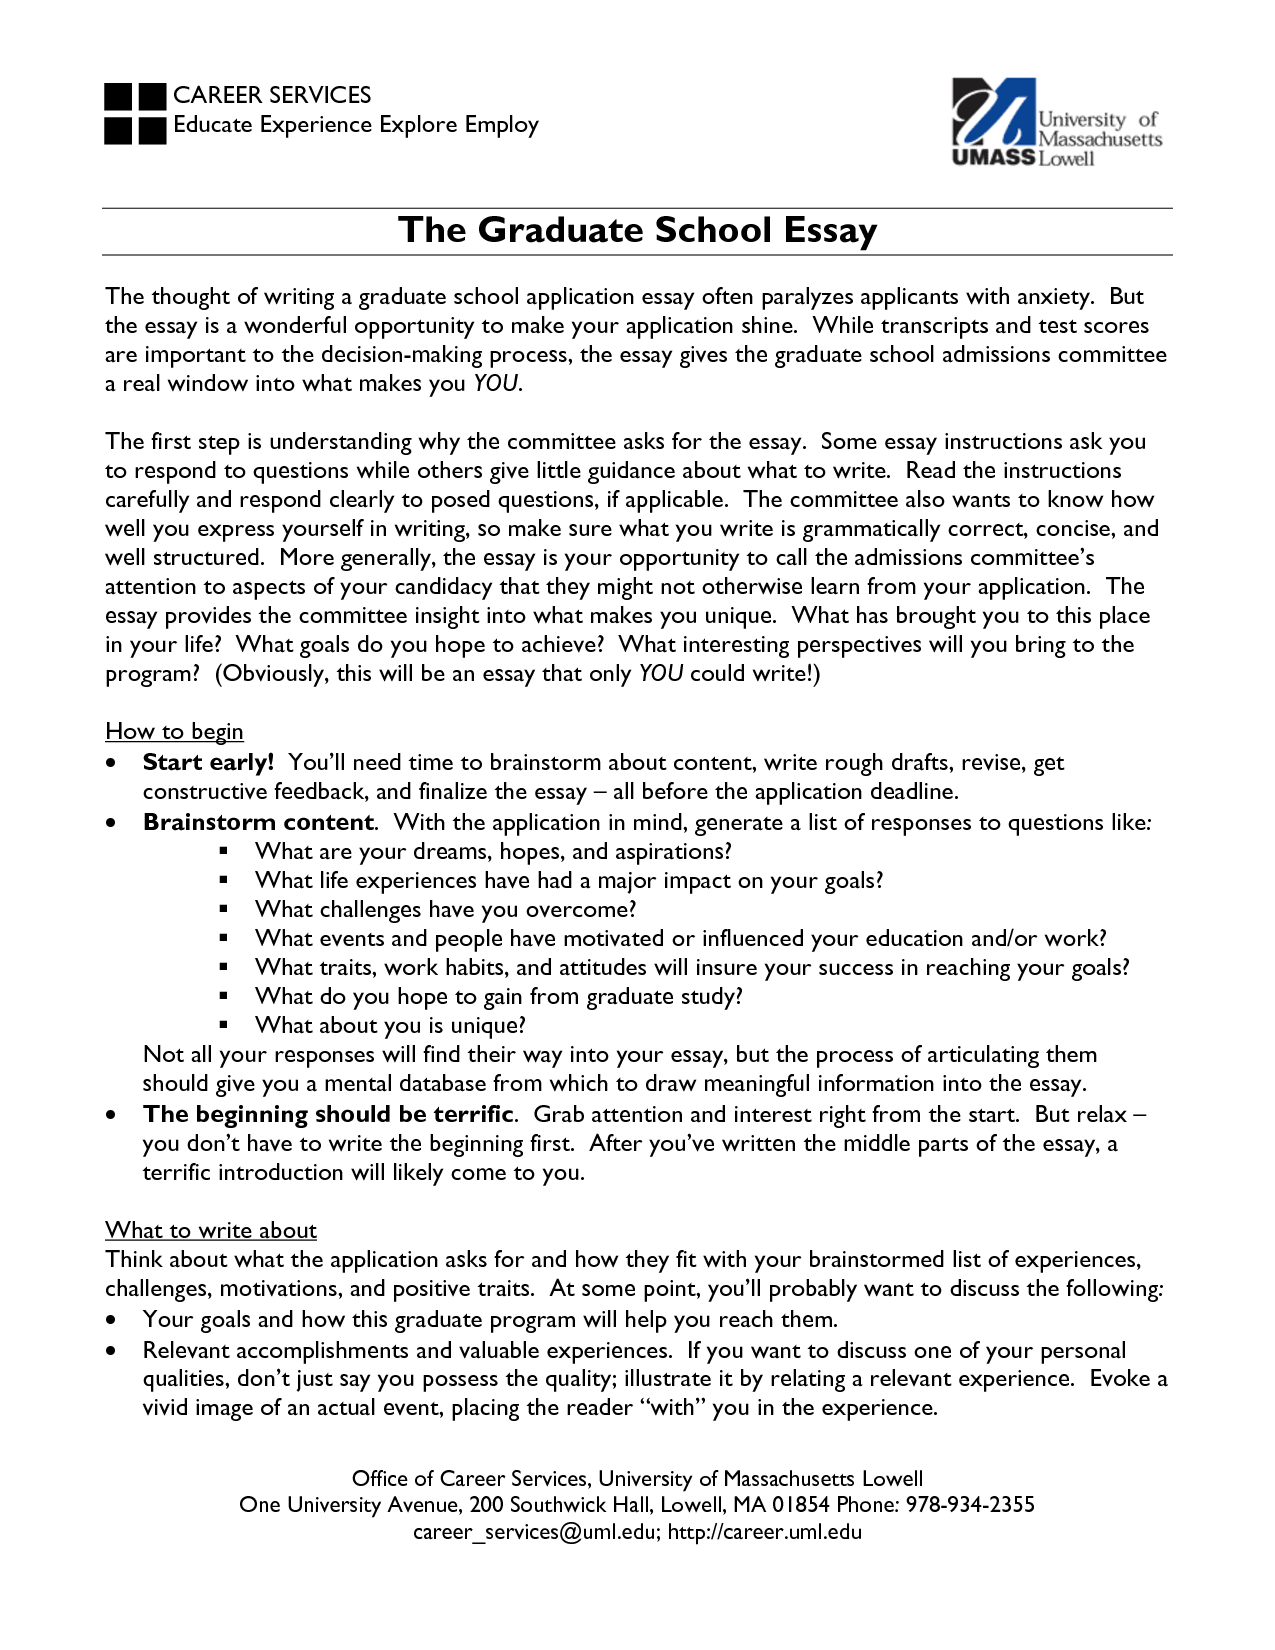 masters admissions essay graduate school application essay professional writing website